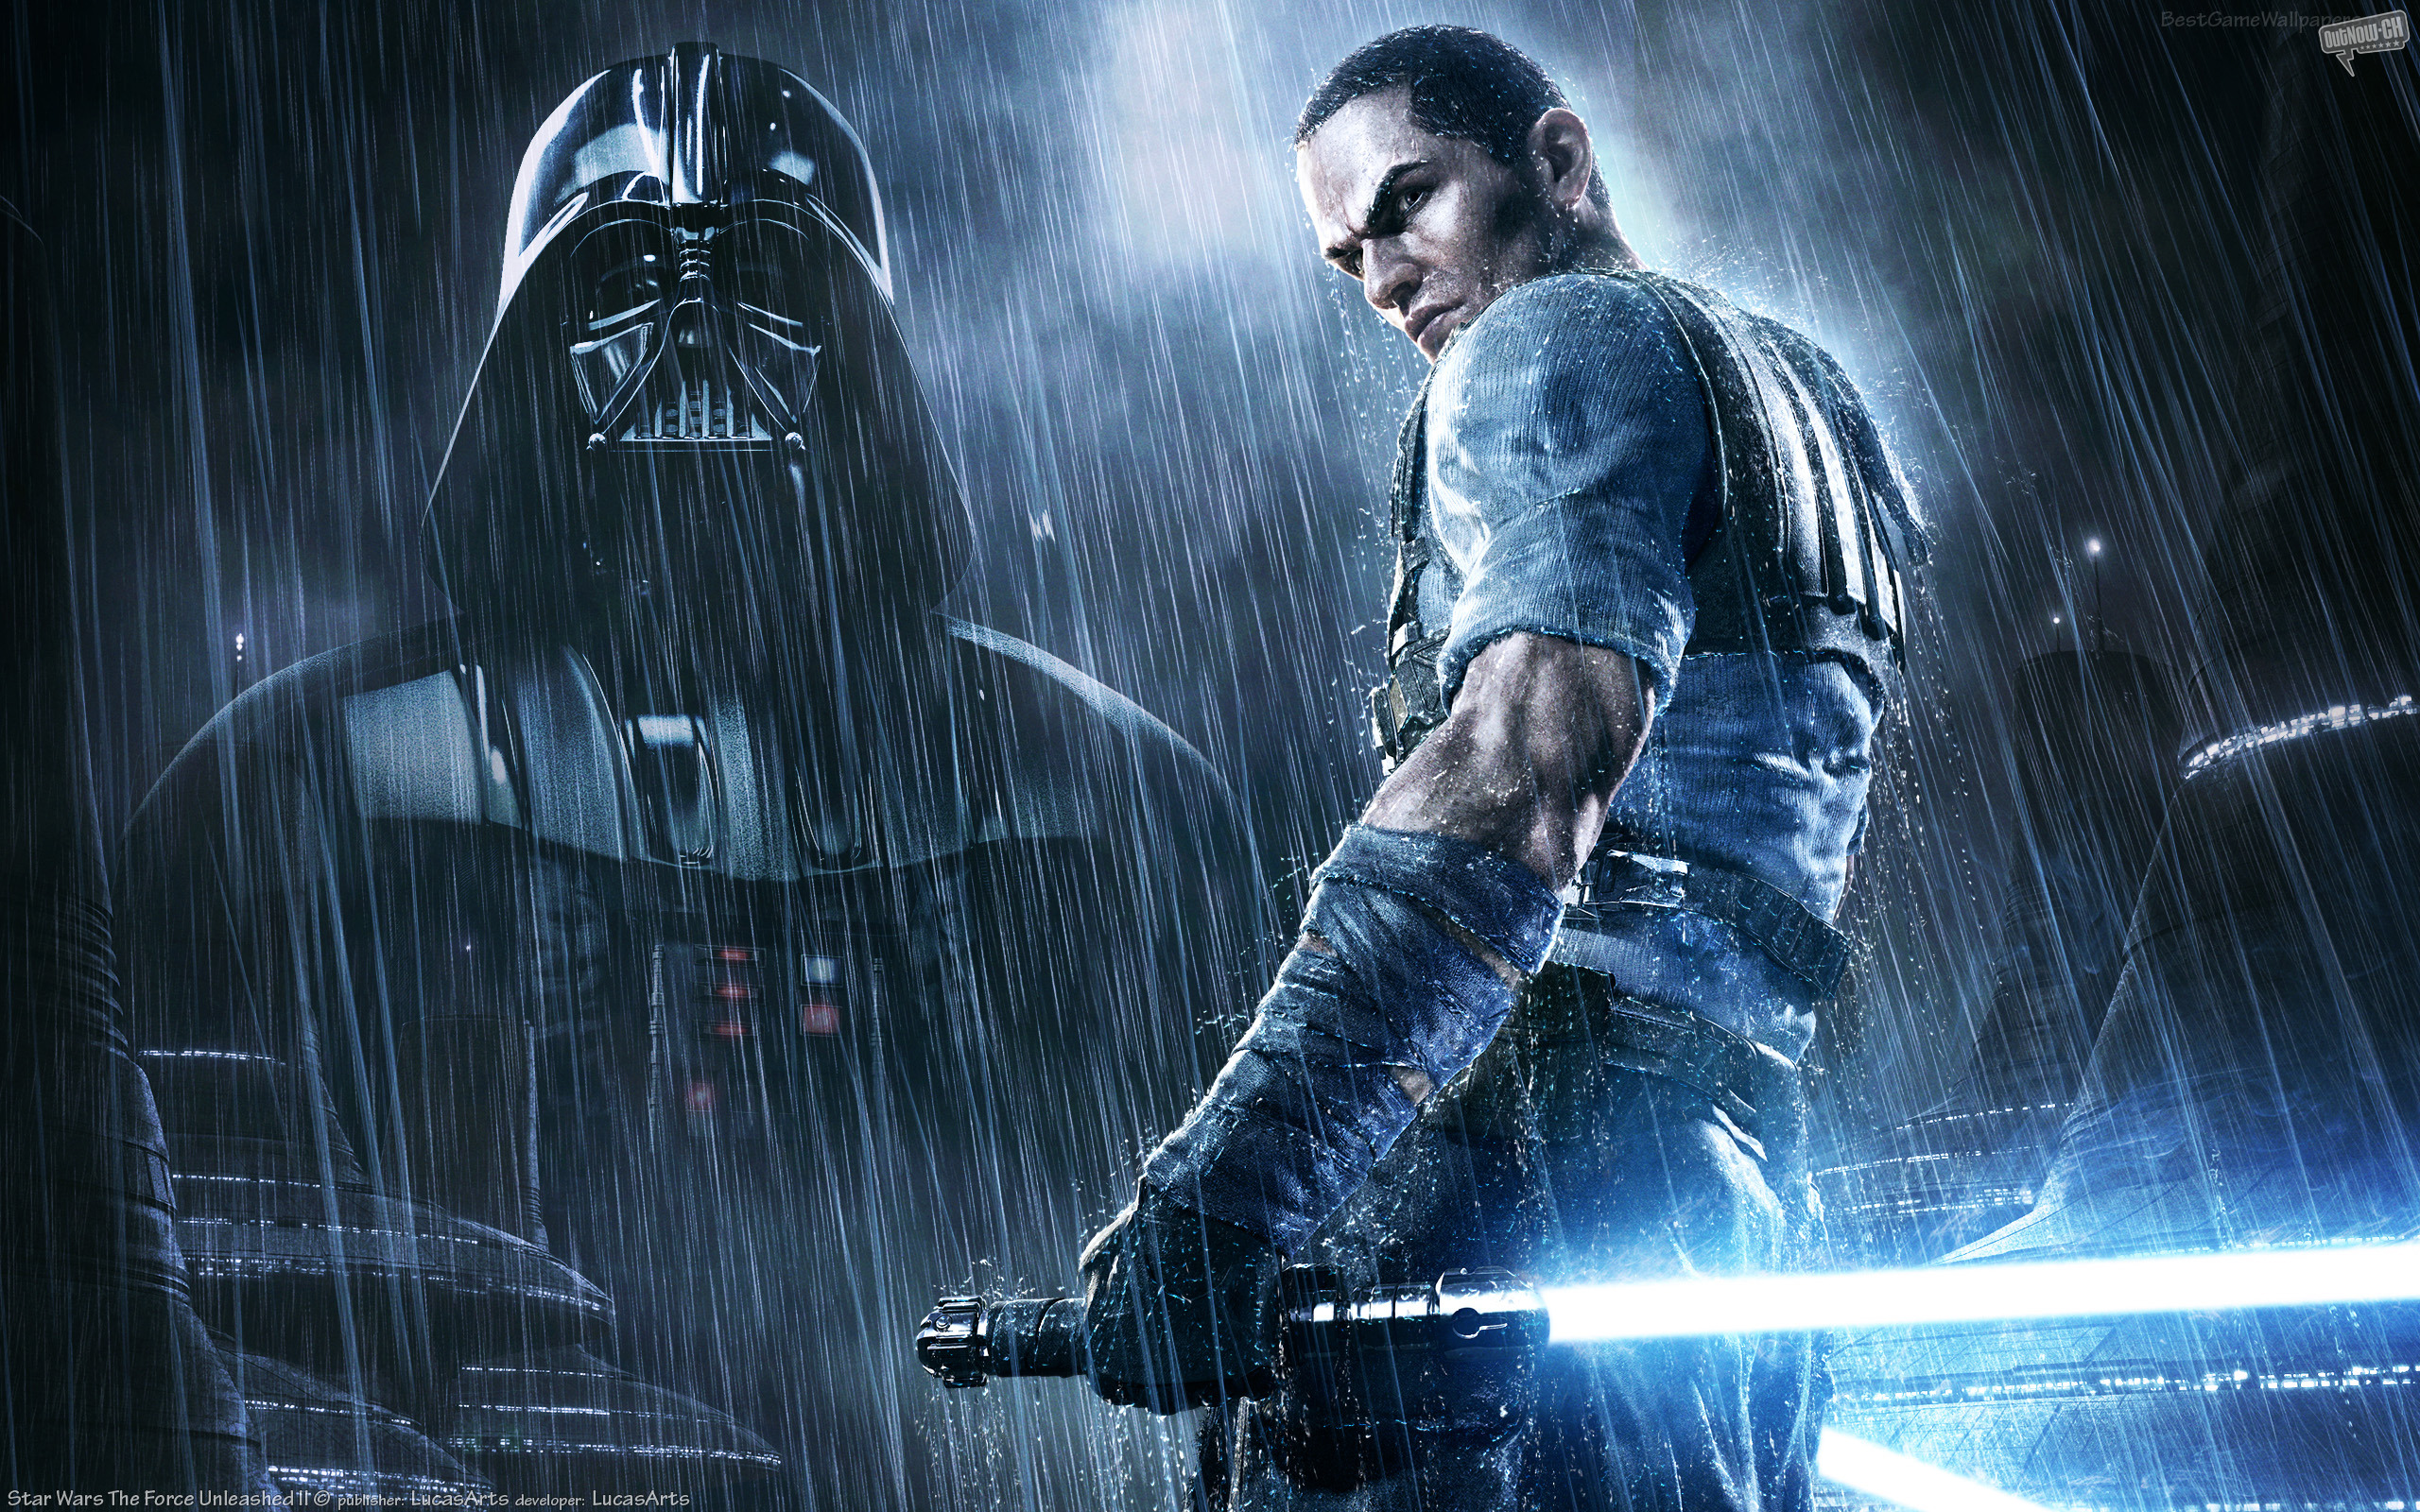 2560x1440 Star Wars Force Unleashed 2 Youtube Channel Cover